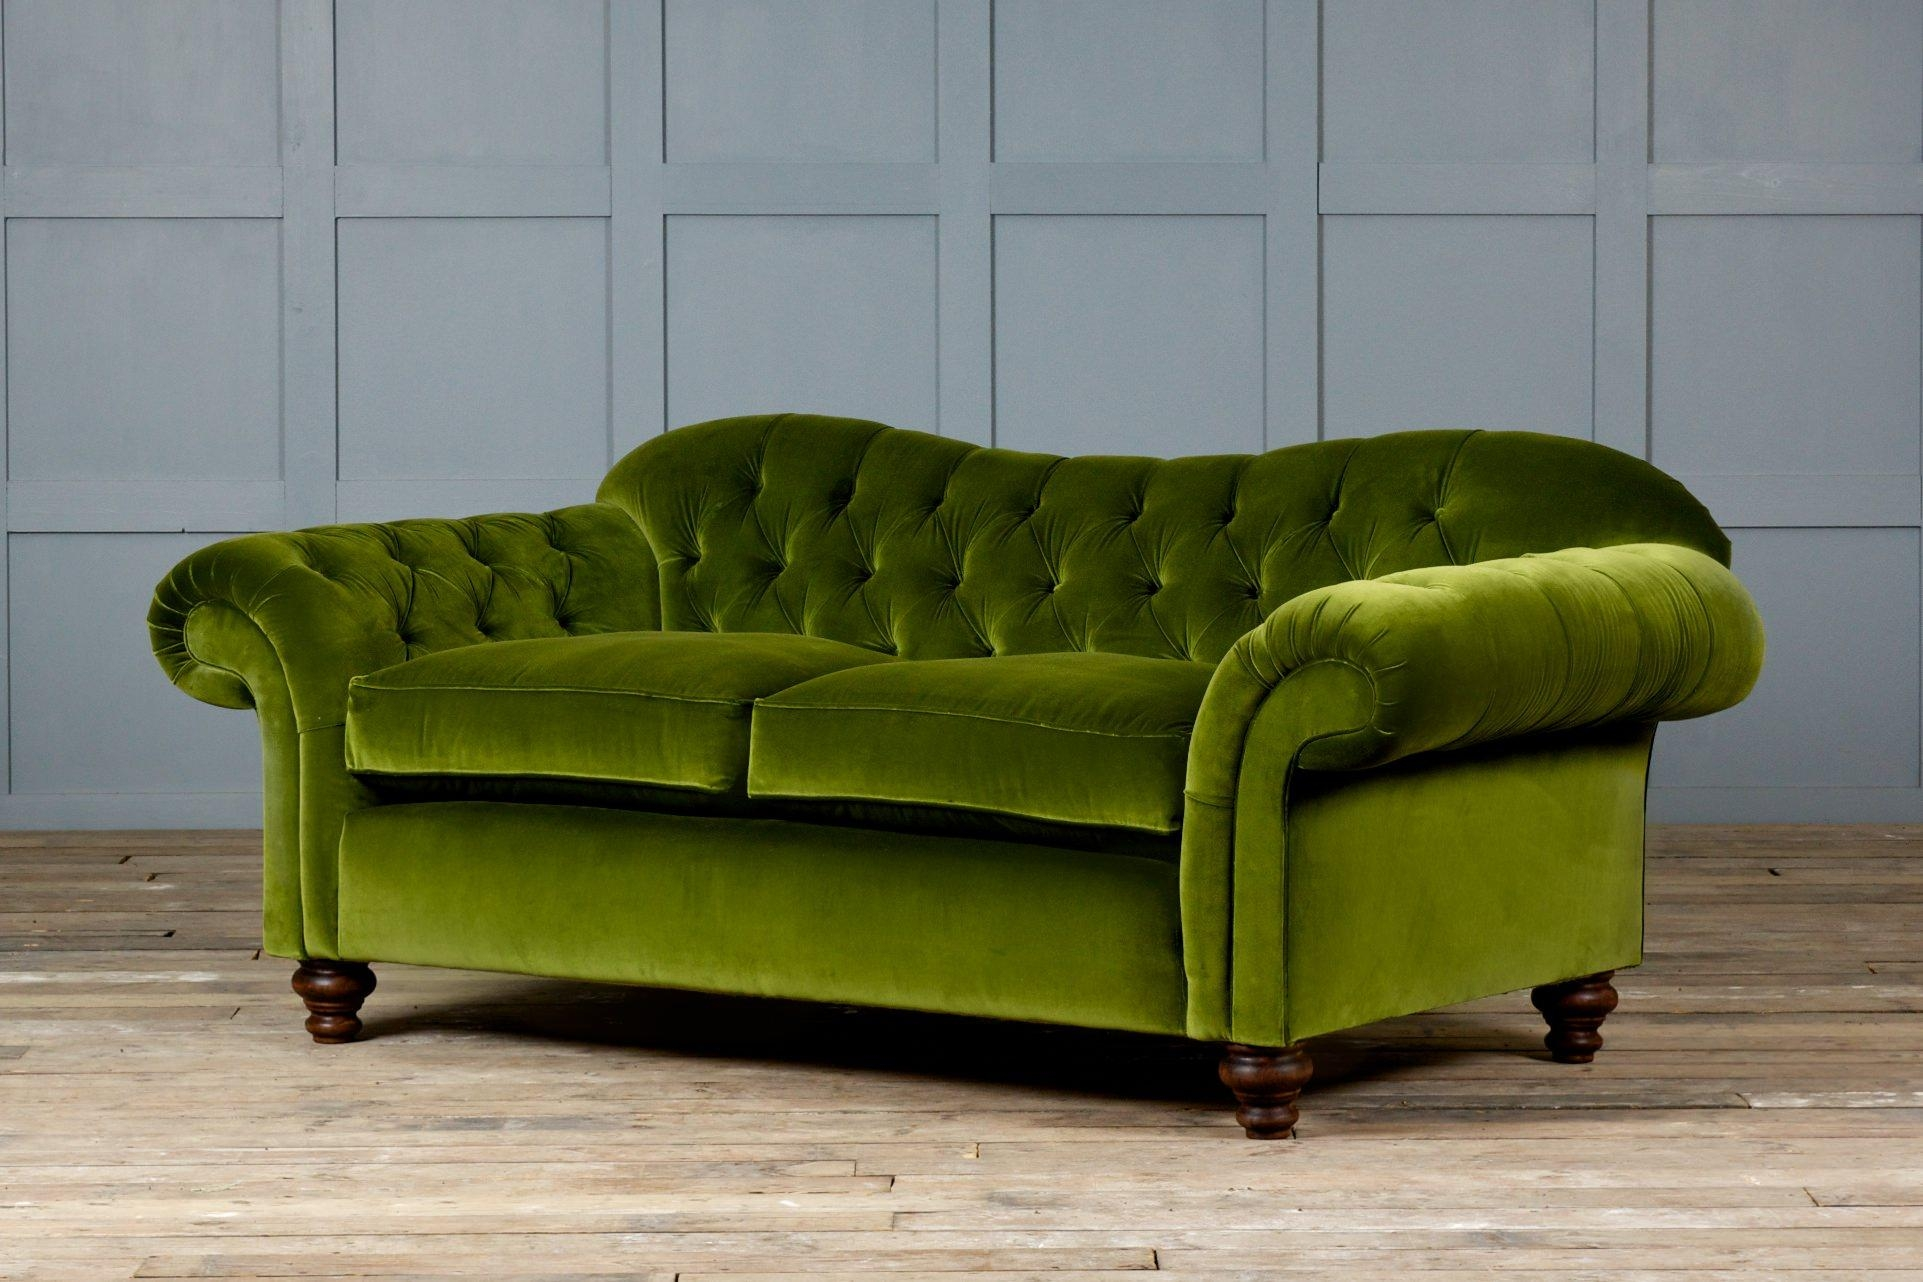 Sofas Center : Vintager Sofa Trend With Additional Room Ideas Inside Sofa Trend (View 15 of 20)